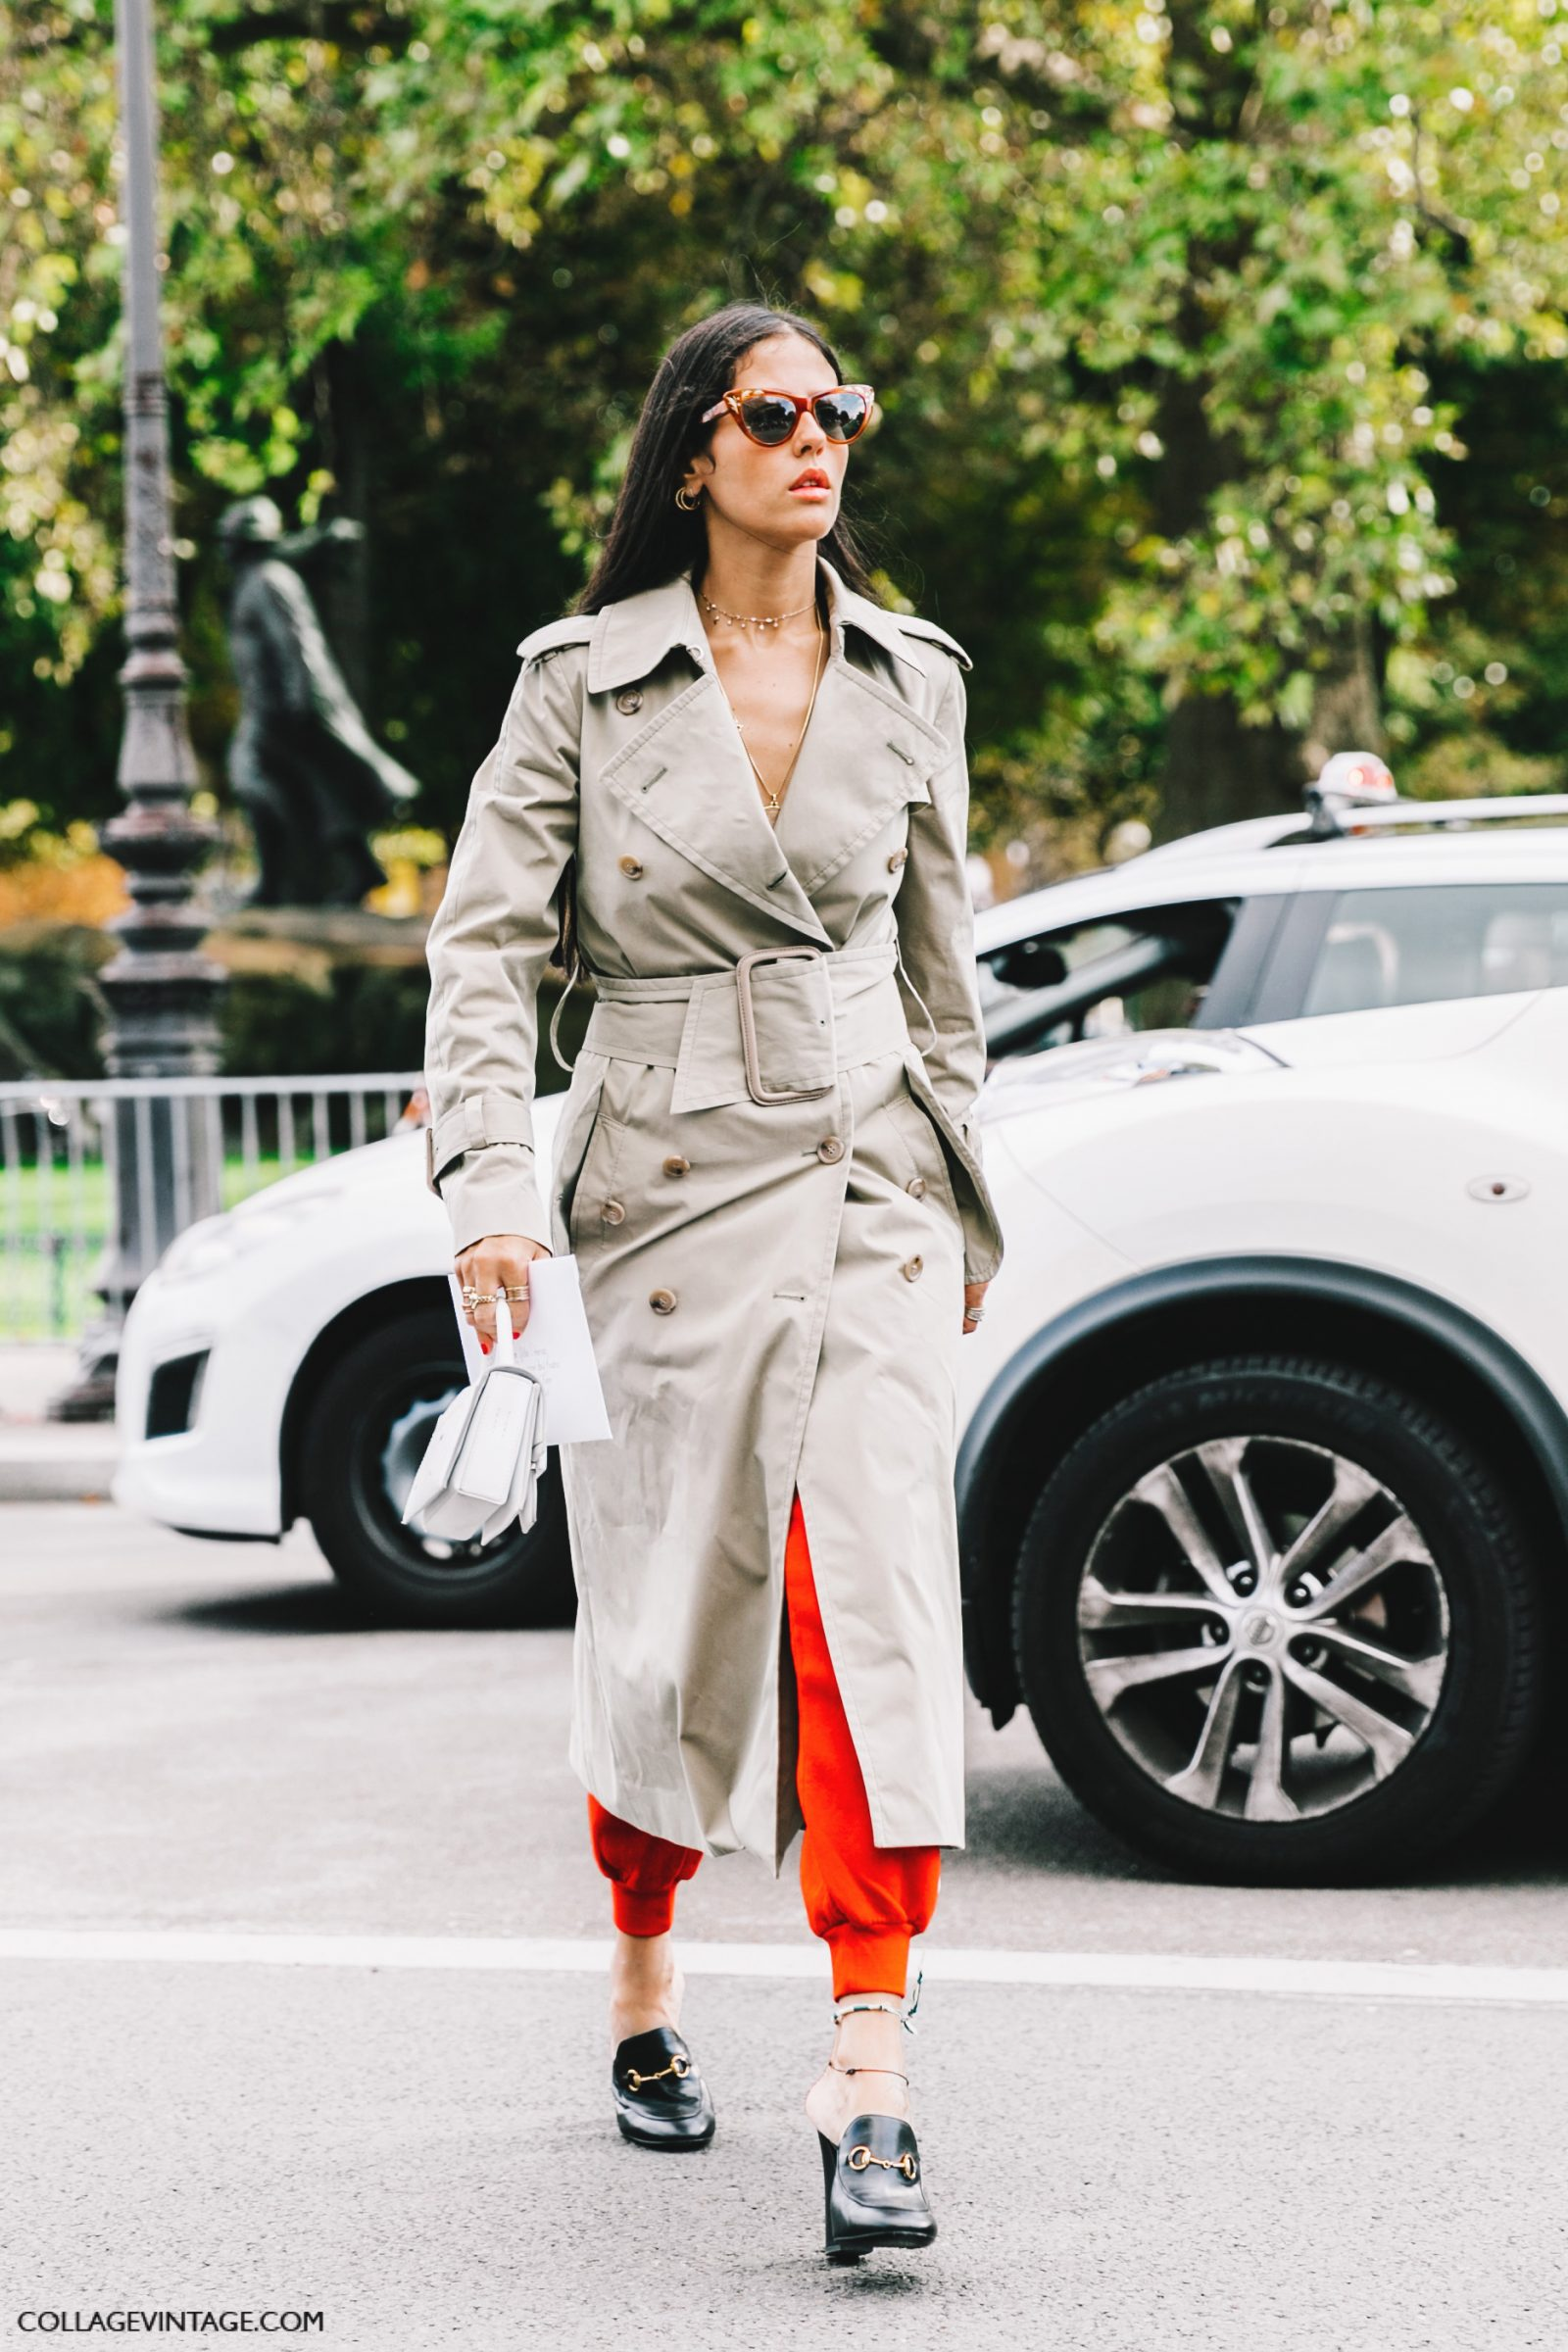 pfw-paris_fashion_week_ss17-street_style-outfits-collage_vintage-rochas-courreges-dries_van_noten-lanvin-guy_laroche-50